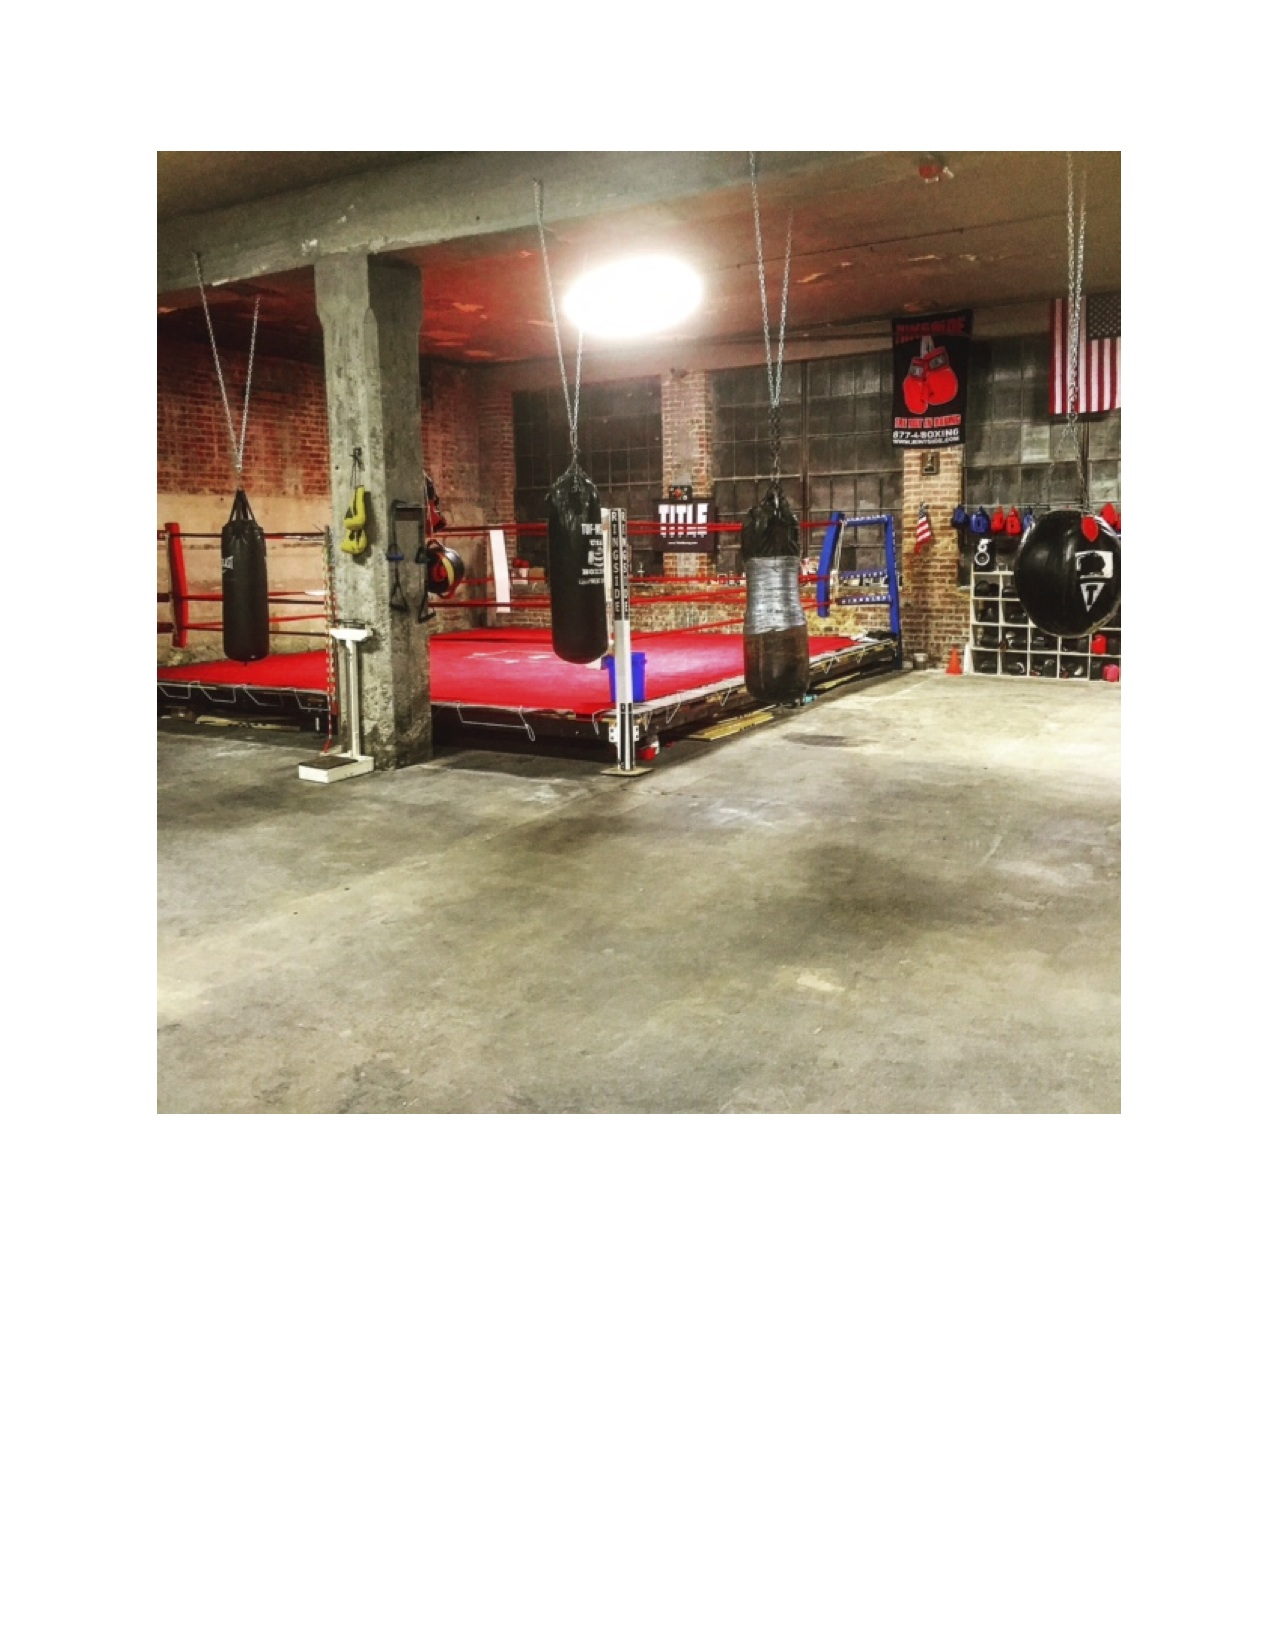 From couch potato to champion pugilist